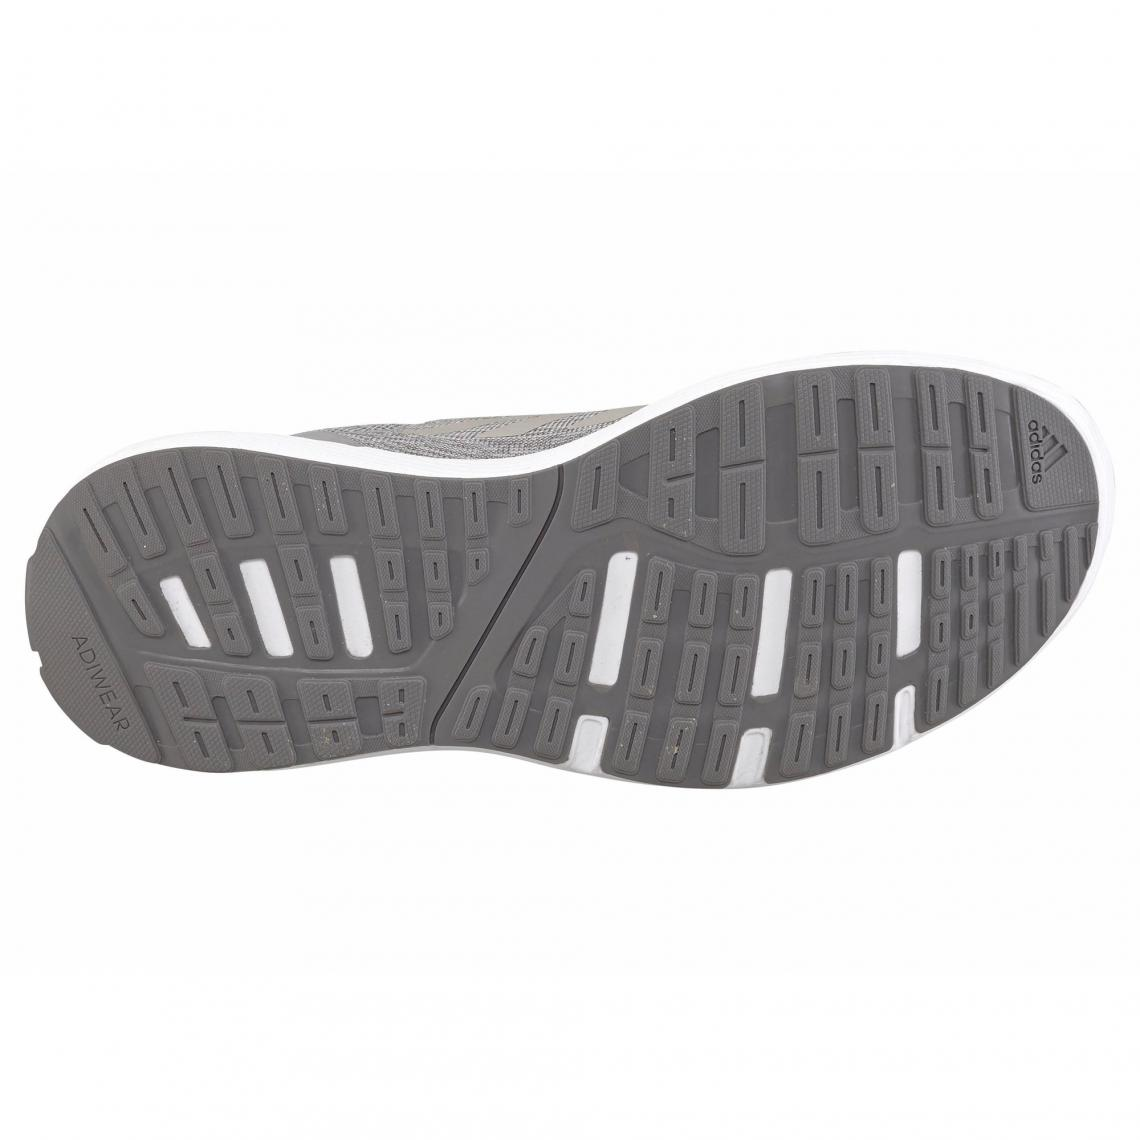 new product 5d698 a282b Basket running Cosmic 2 W adidas Performance pour femme - Gris - Blanc  Adidas Performance